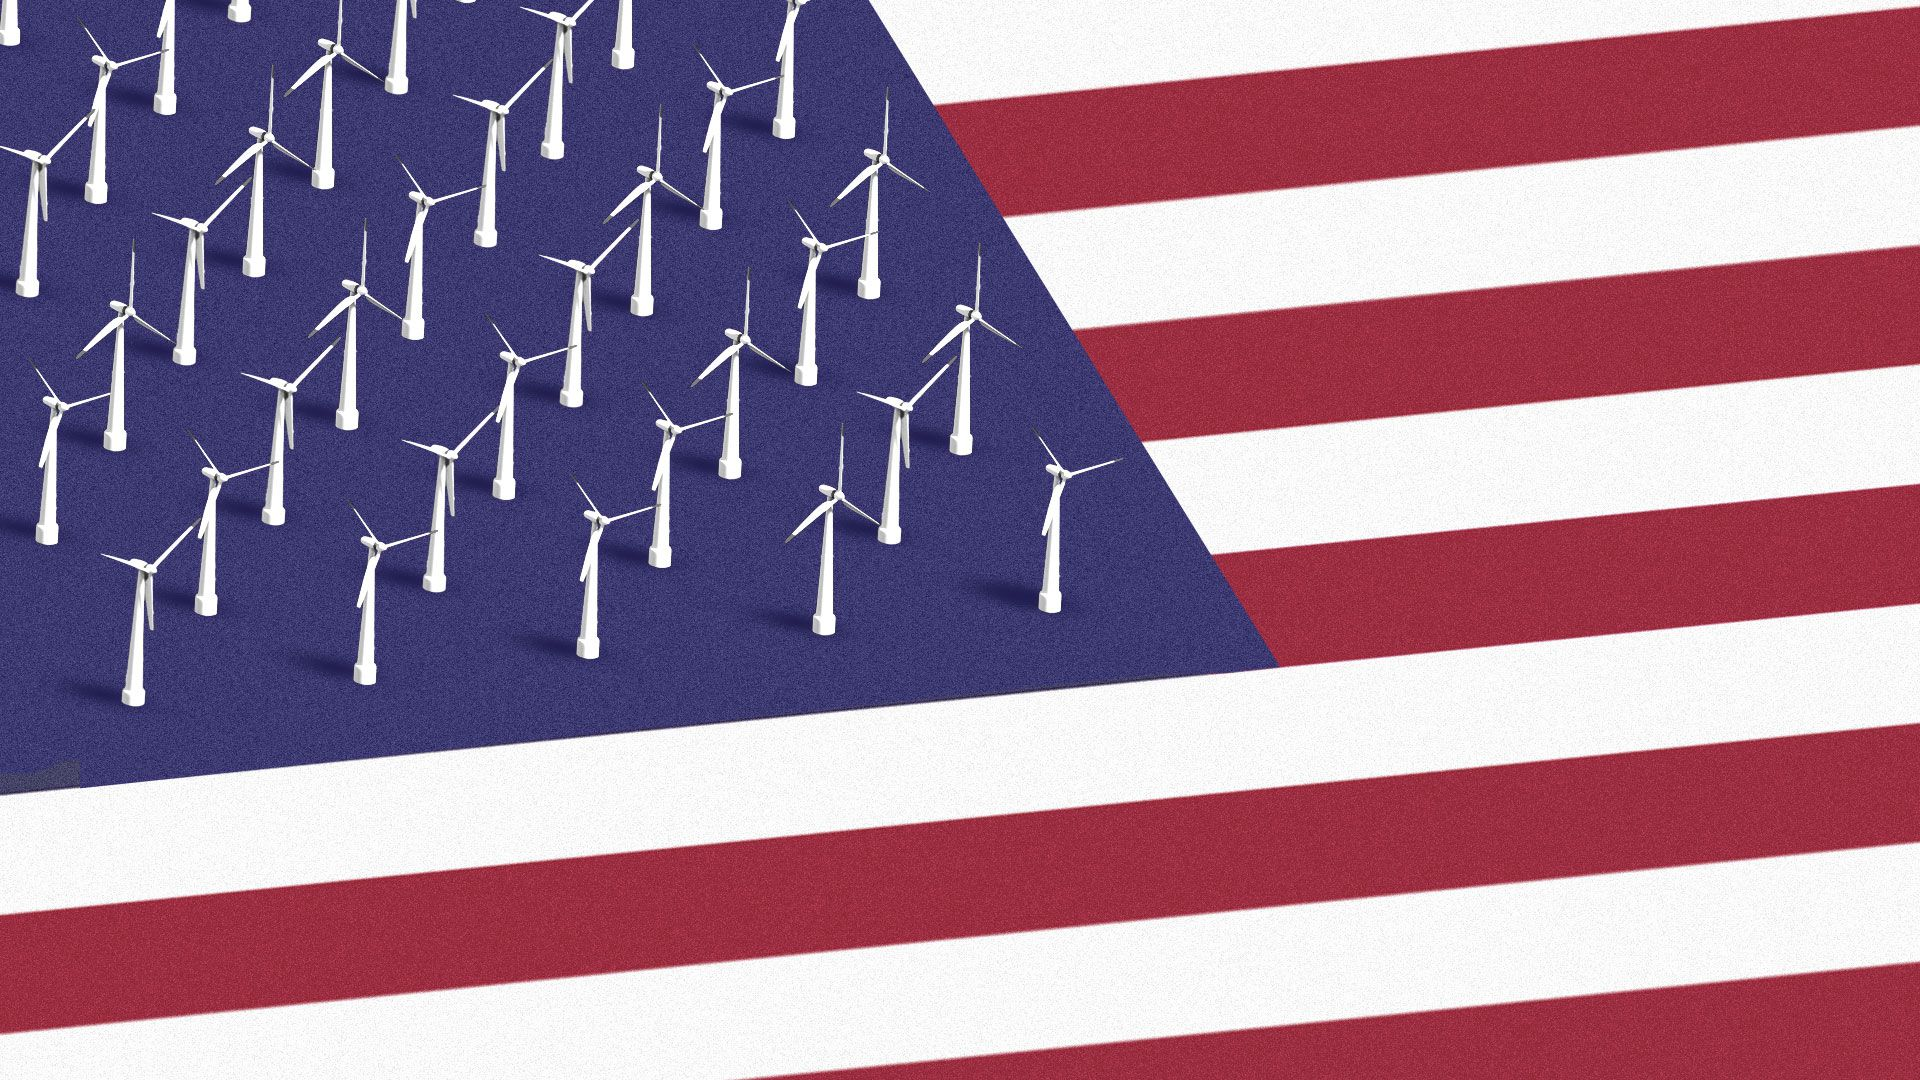 The stars in the U.S. flag replaced by offshore wind turbines